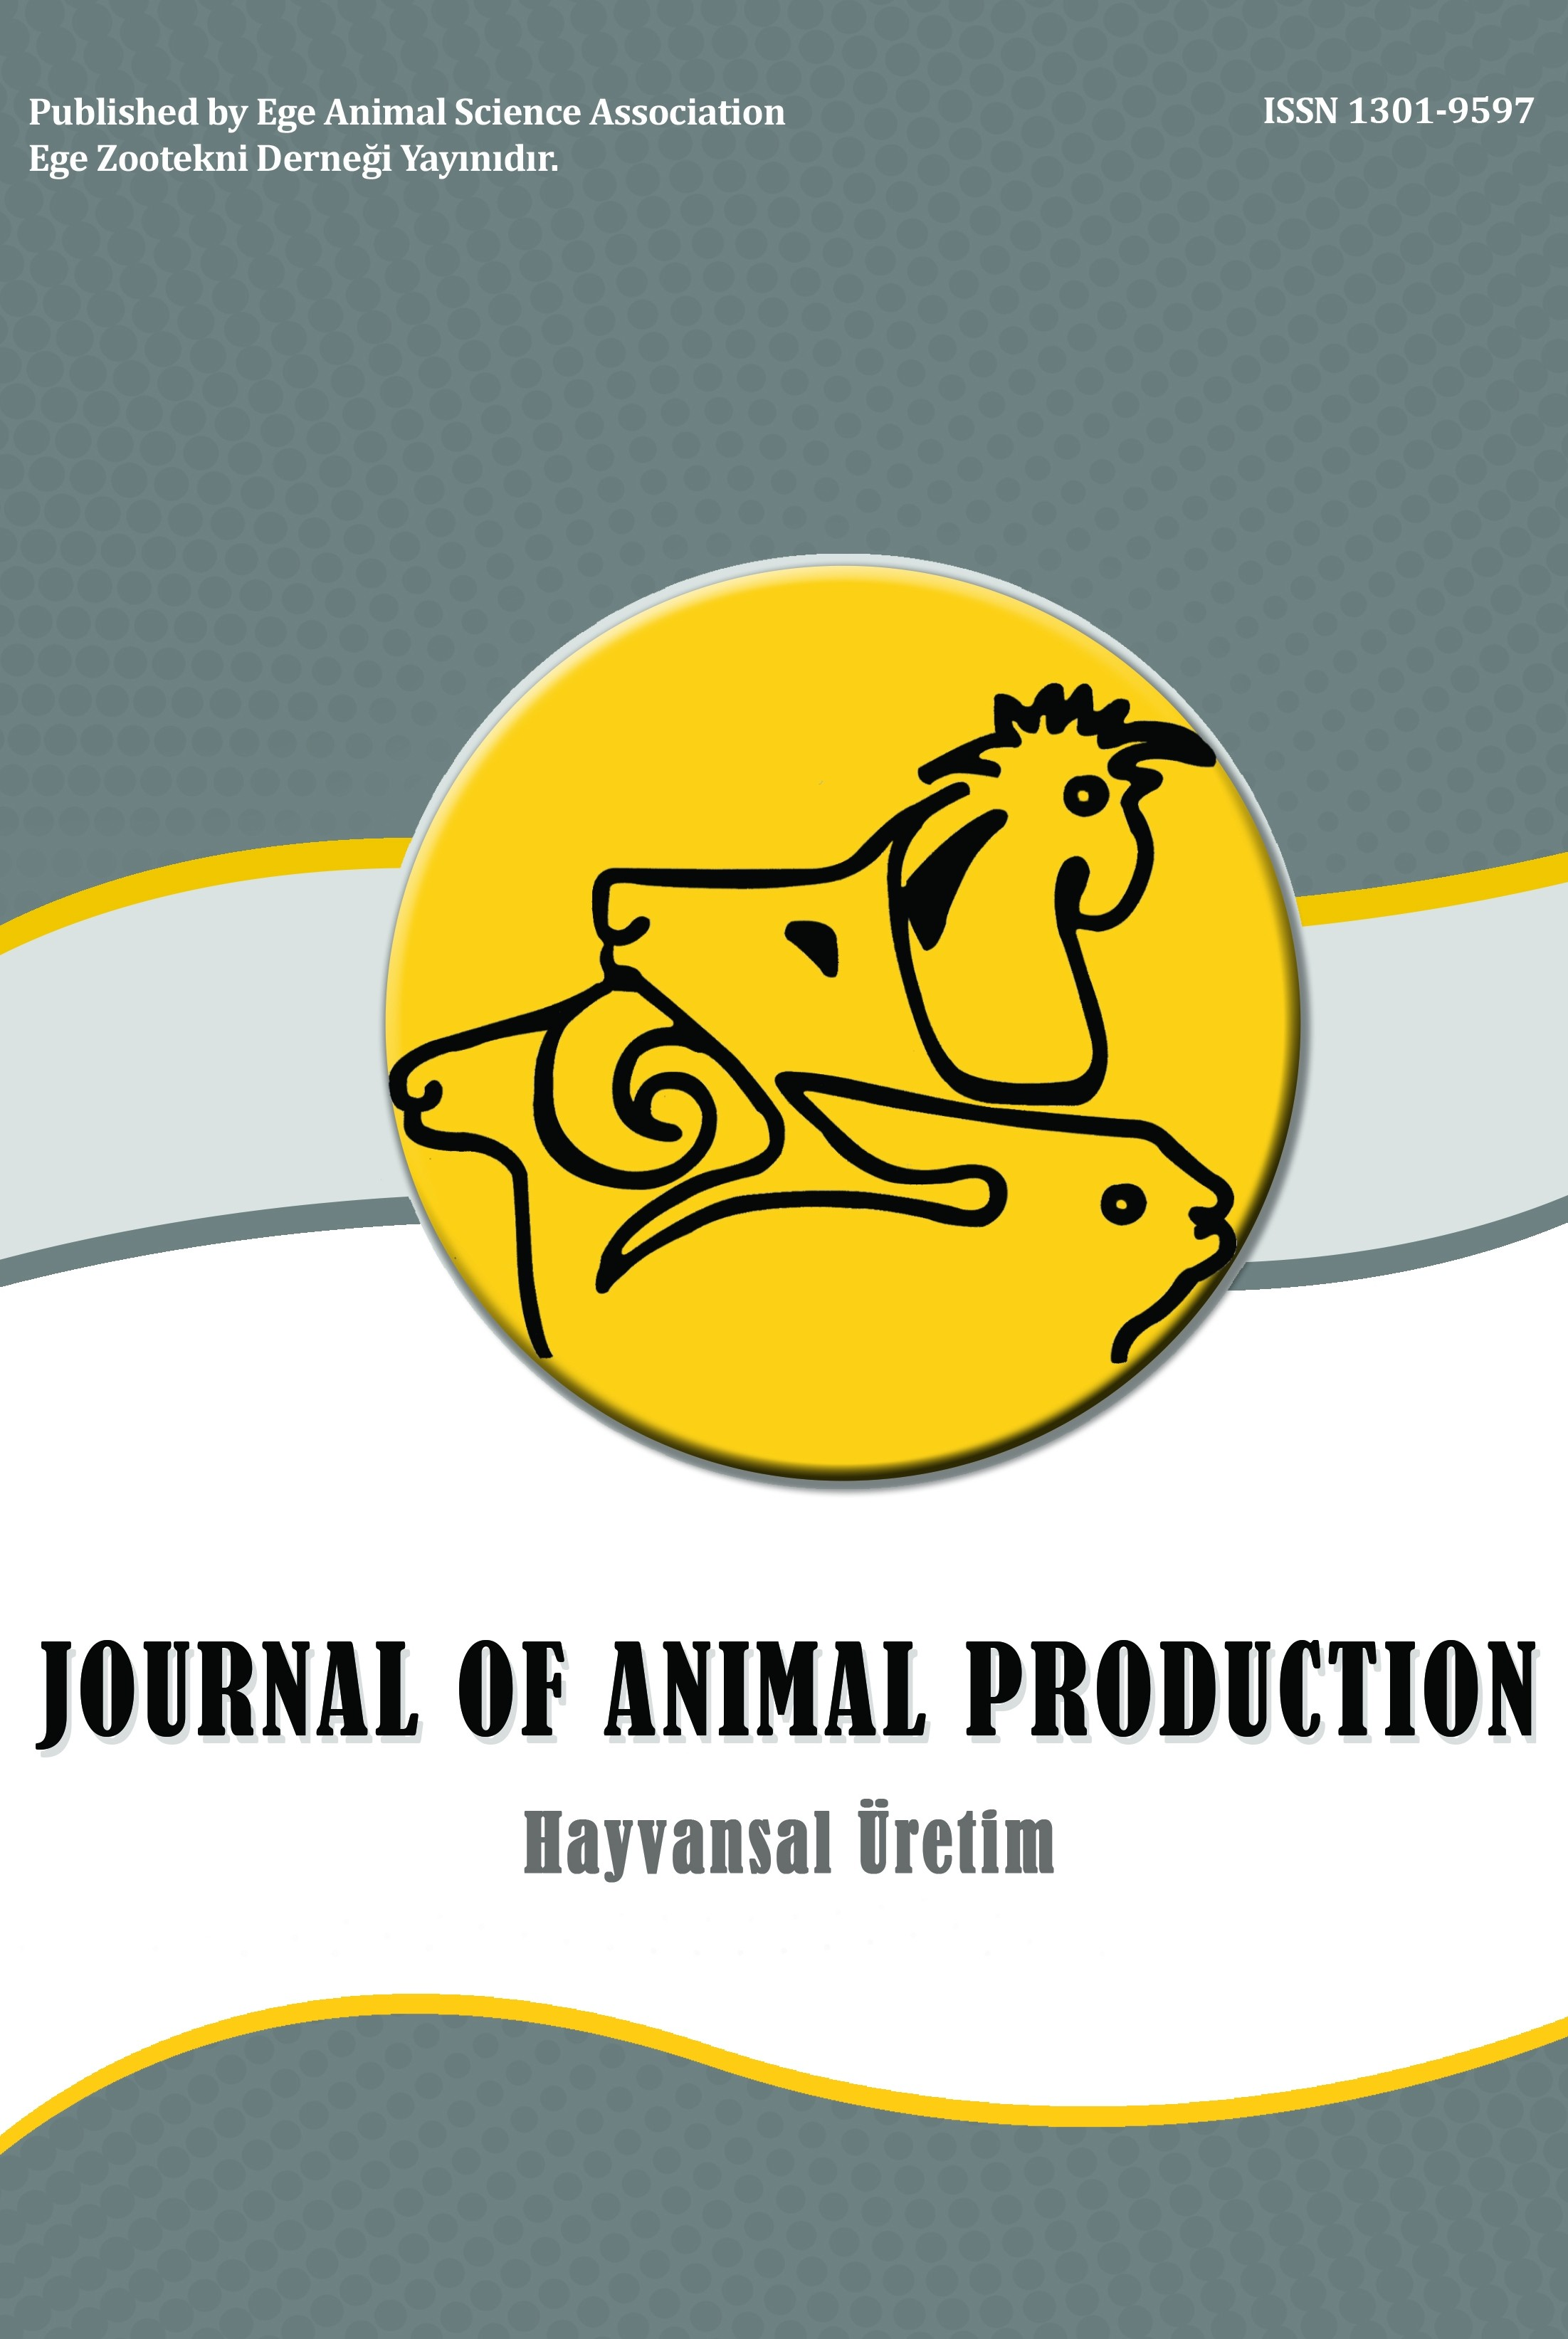 Journal of Animal Production